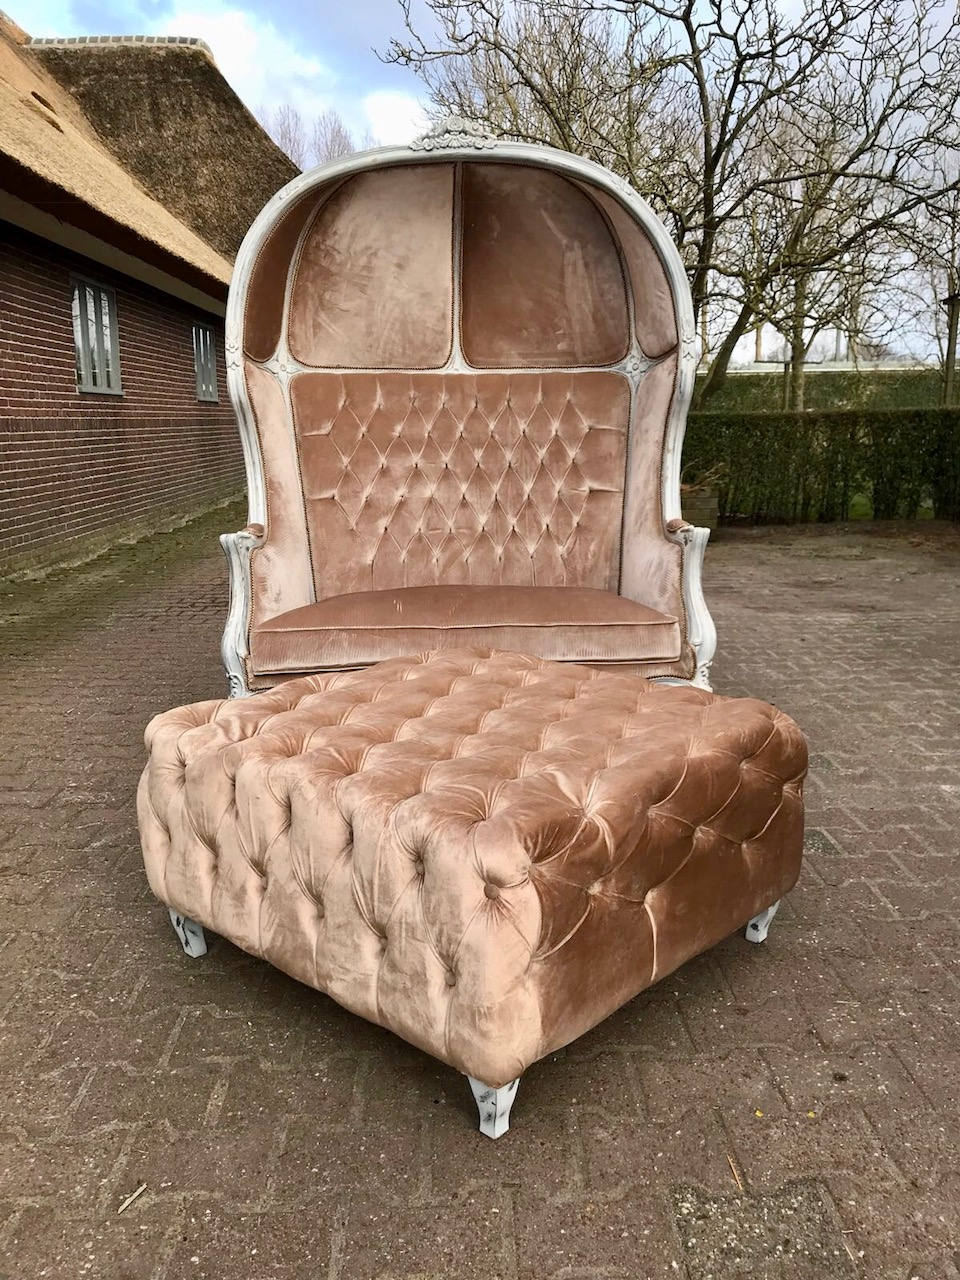 French Balloon Chair Throne Chair Reproduction Champagne Velvet Chair Bench Tufted Cream/White Frame French Furniture Rococo Interior Design